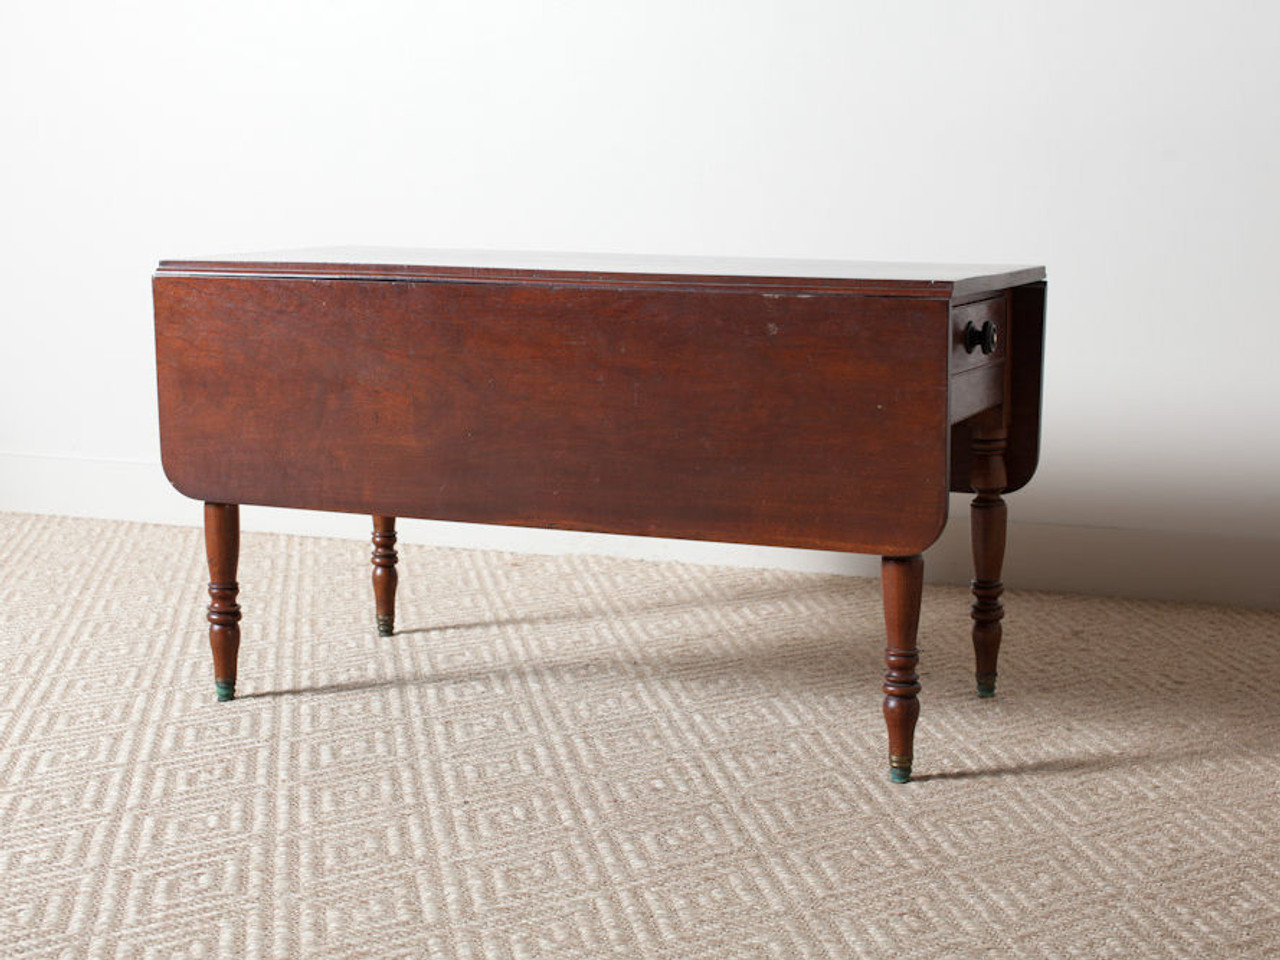 Antique Drop Leaf Table >> Antique Dropleaf Table